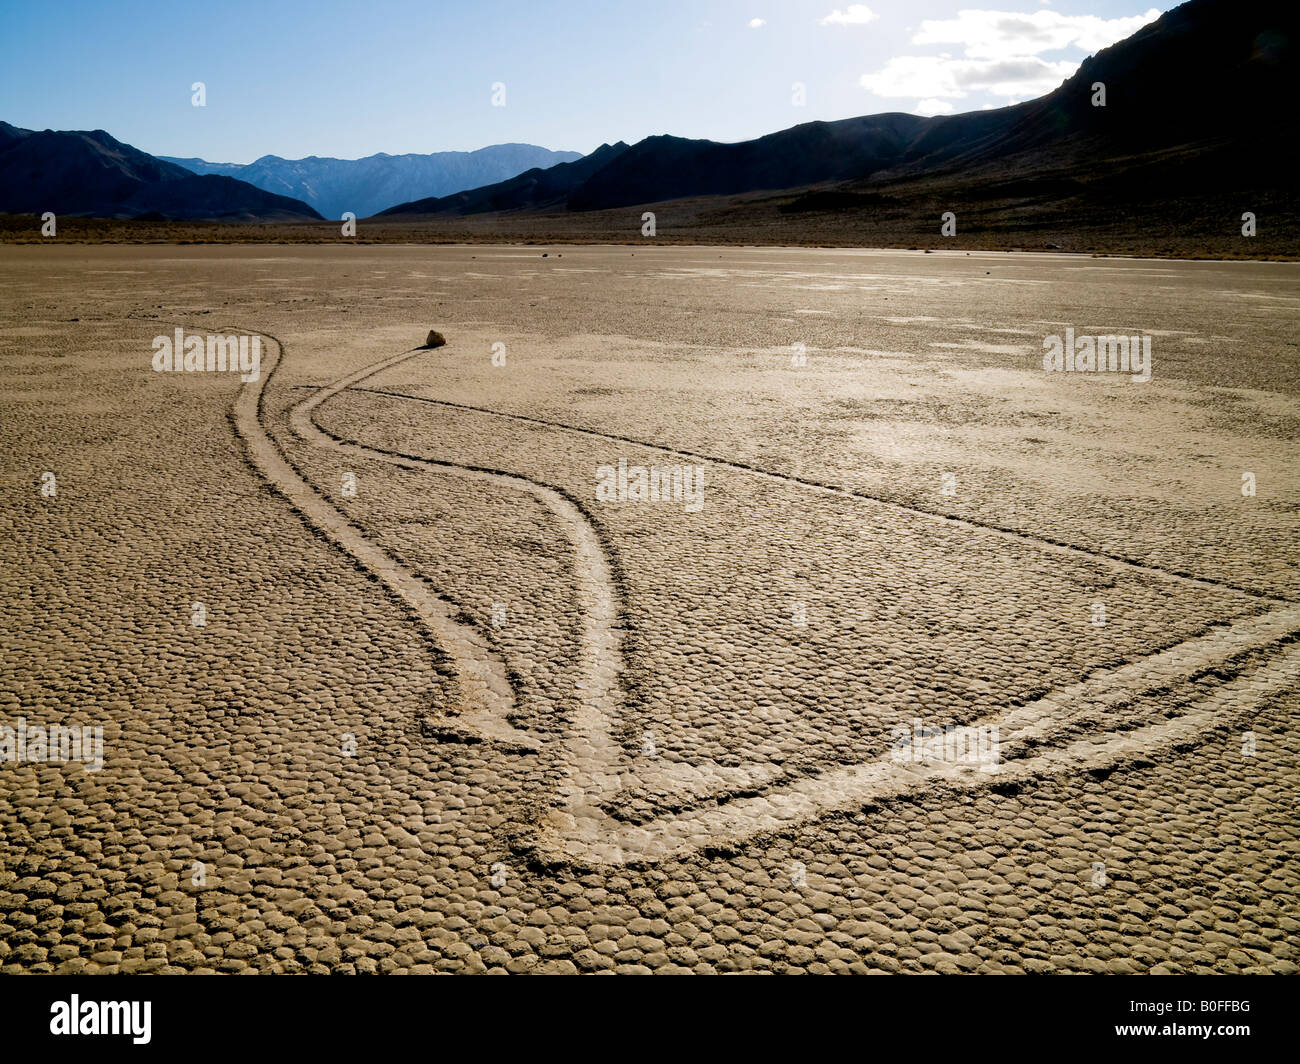 Les Rochers roulant Racetrack Death Valley National Park Californie Nevada USA Photo Stock